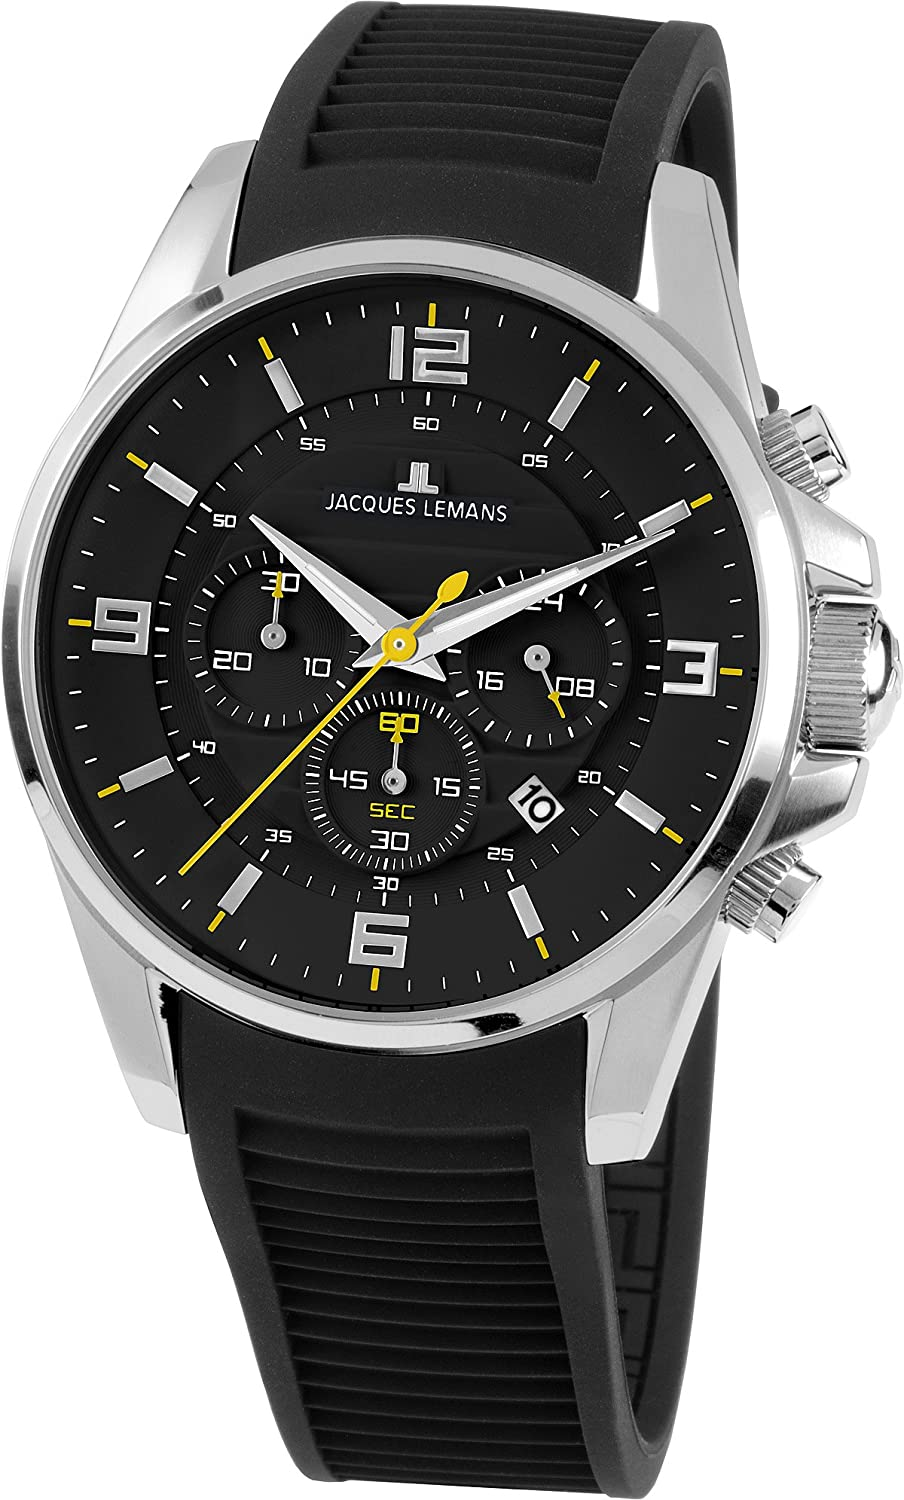 Amazon.com: Jacques Lemans Liverpool 1-1799A Mens Watch: Jacques Lemans: Watches